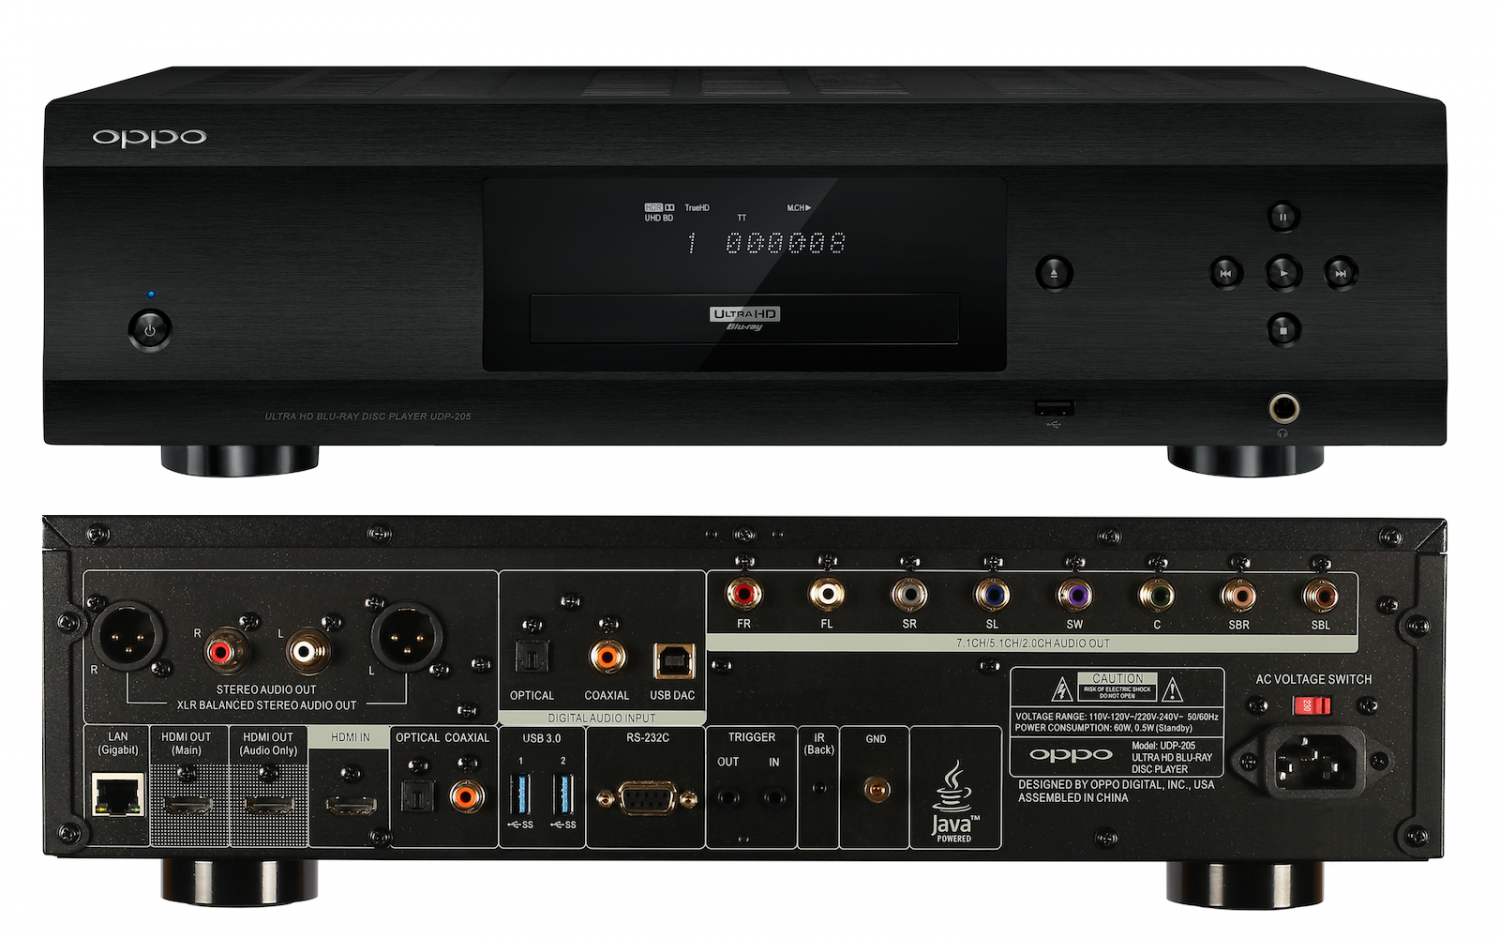 Oppo Releases Udp 205 Audiophile Universal Player